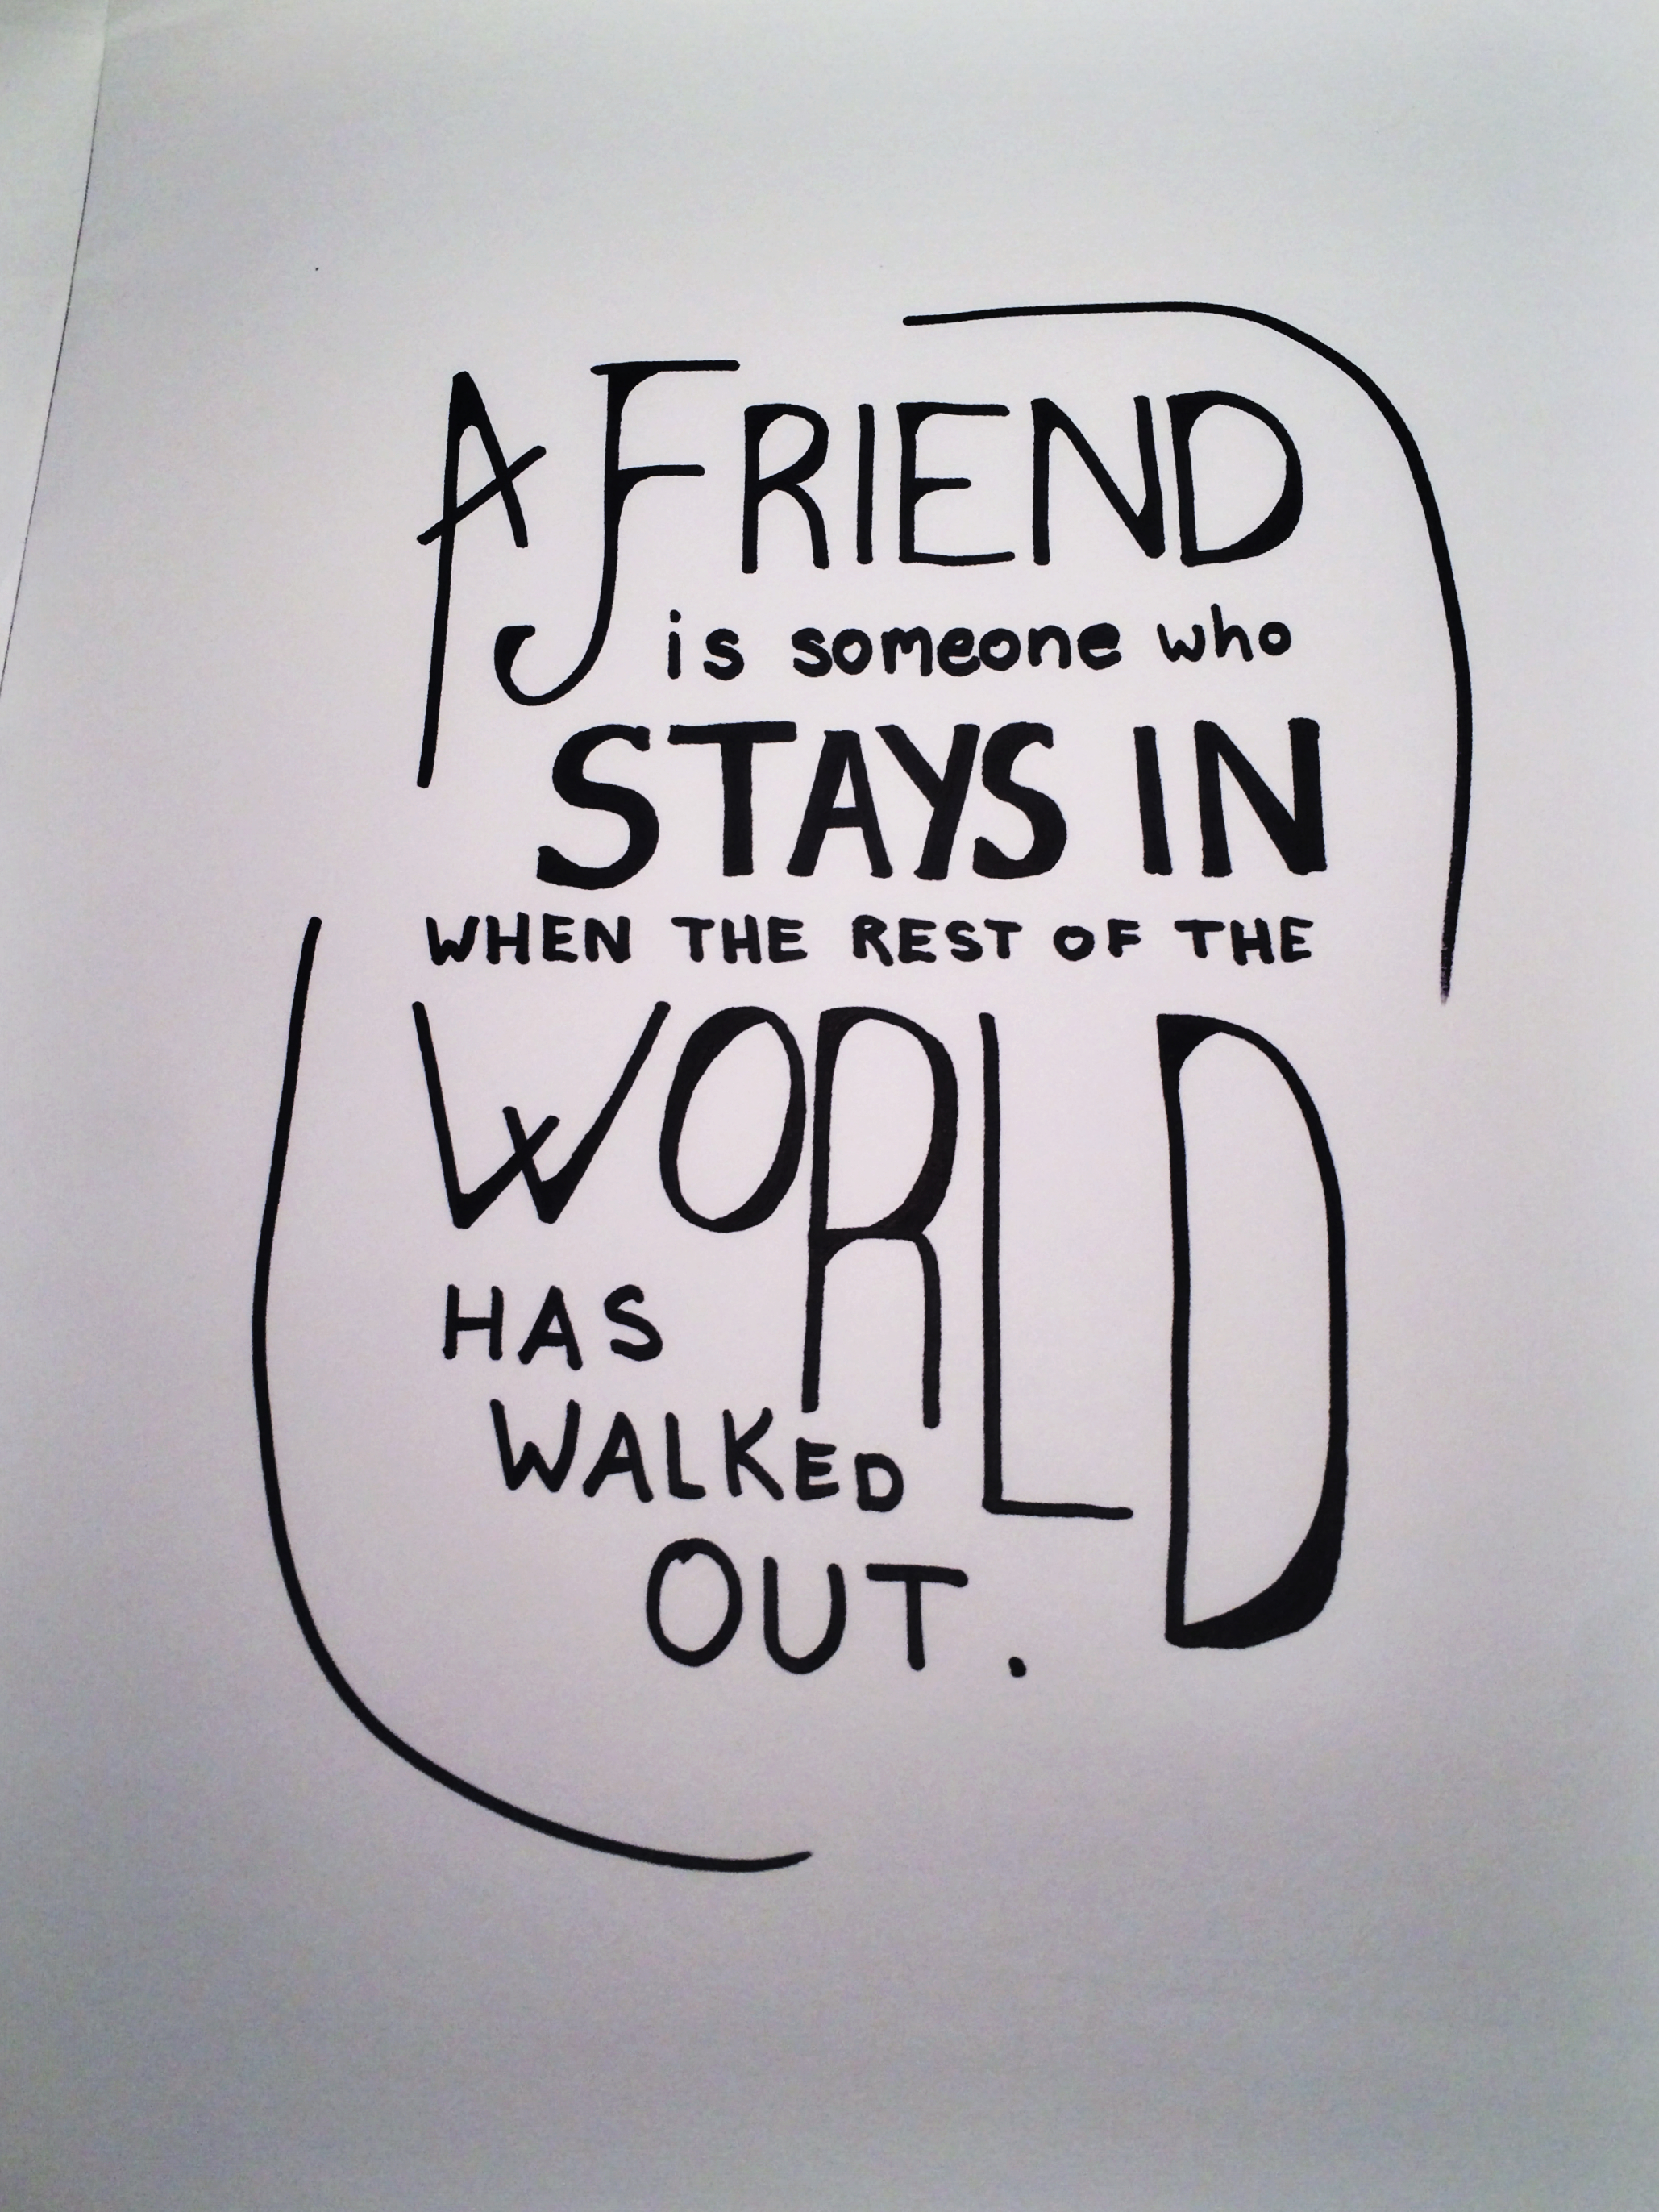 25 Short Friendship Quotes to Share With Your Best Friend ...  |Adorable Quotes For Your Friends